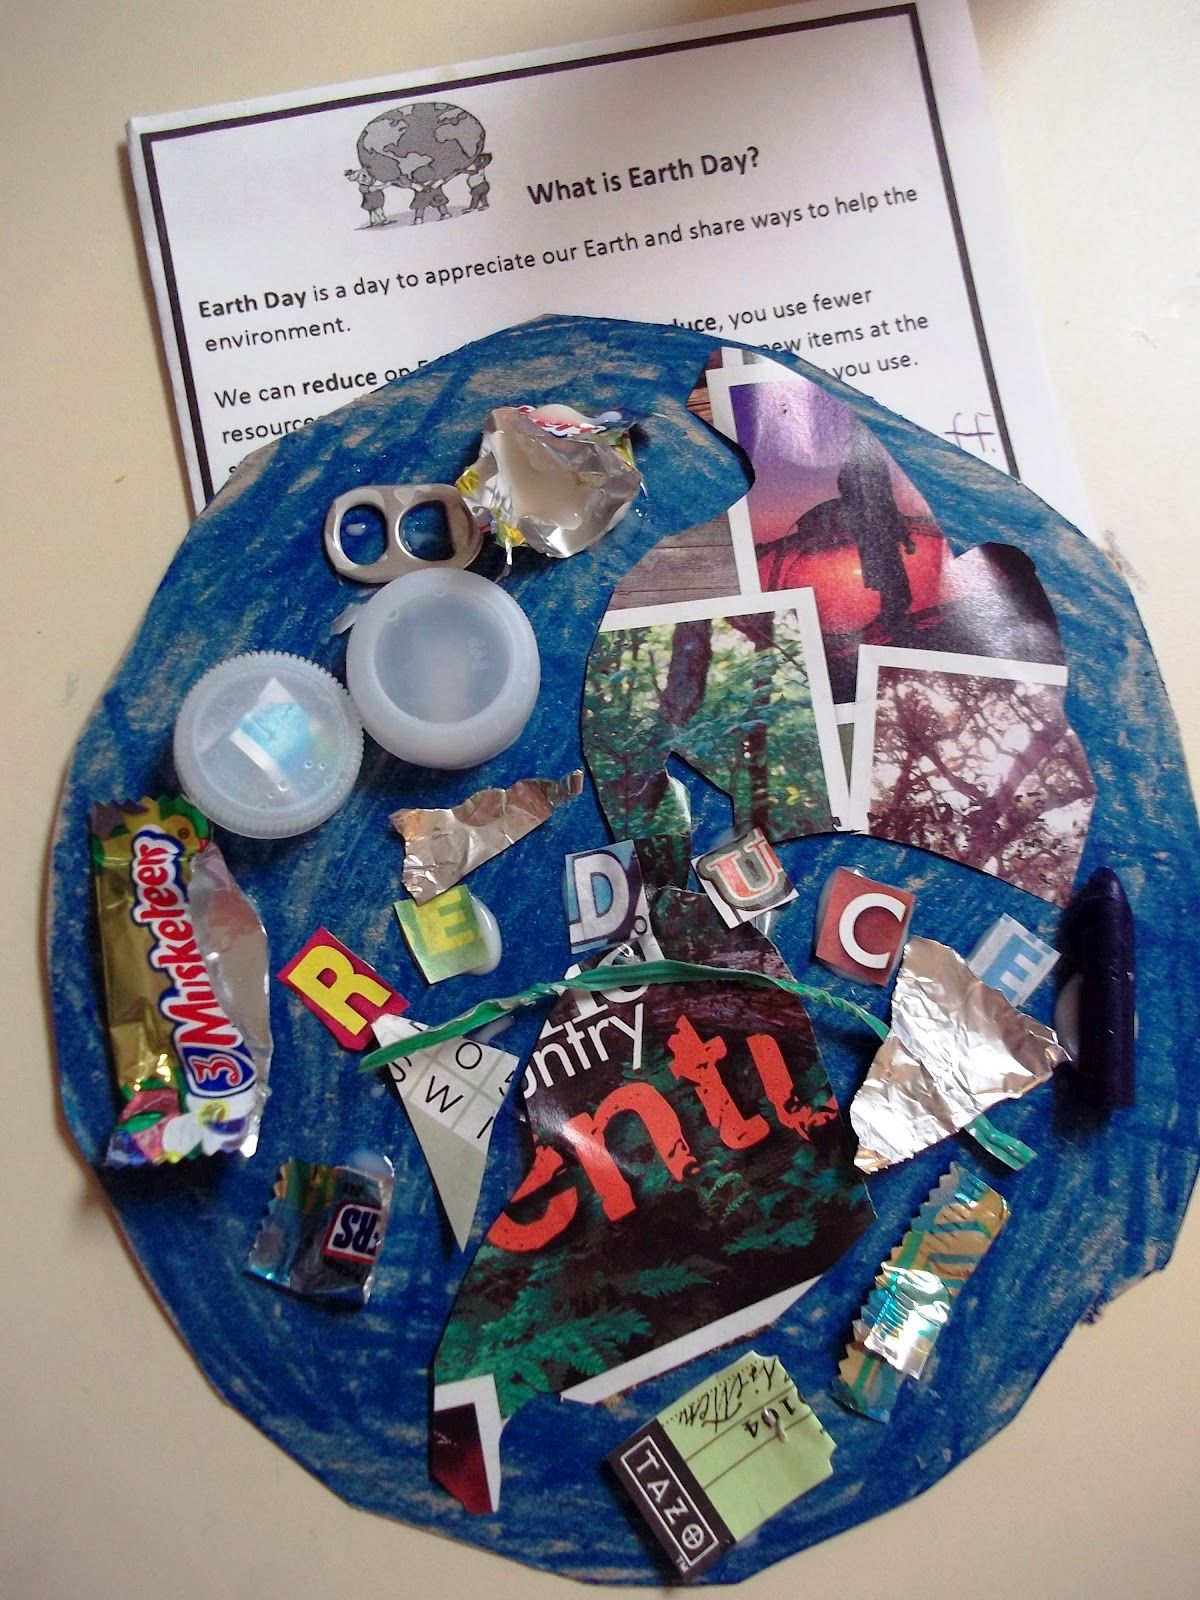 Reduce reuse recycle activities - Earth Day Glyph Reduce Reuse Recycle Project For Kids